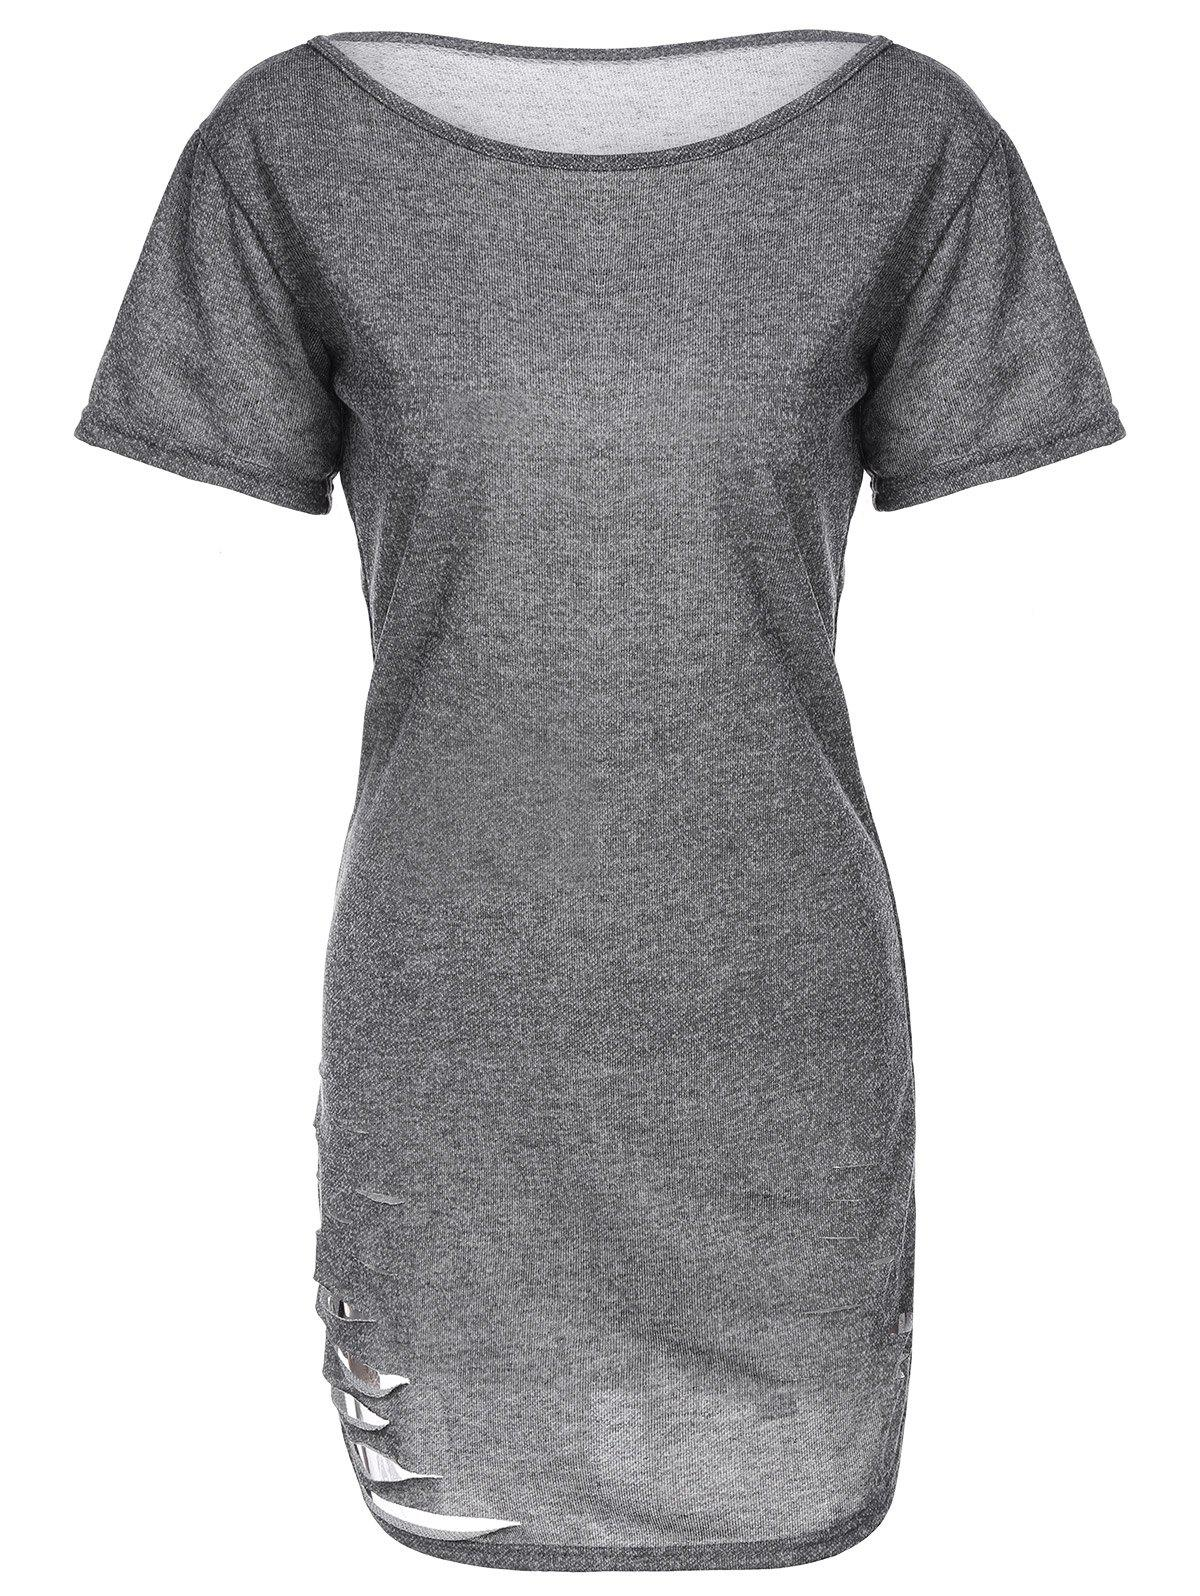 Ripped Knitting Casual DressWomen<br><br><br>Size: L<br>Color: GRAY